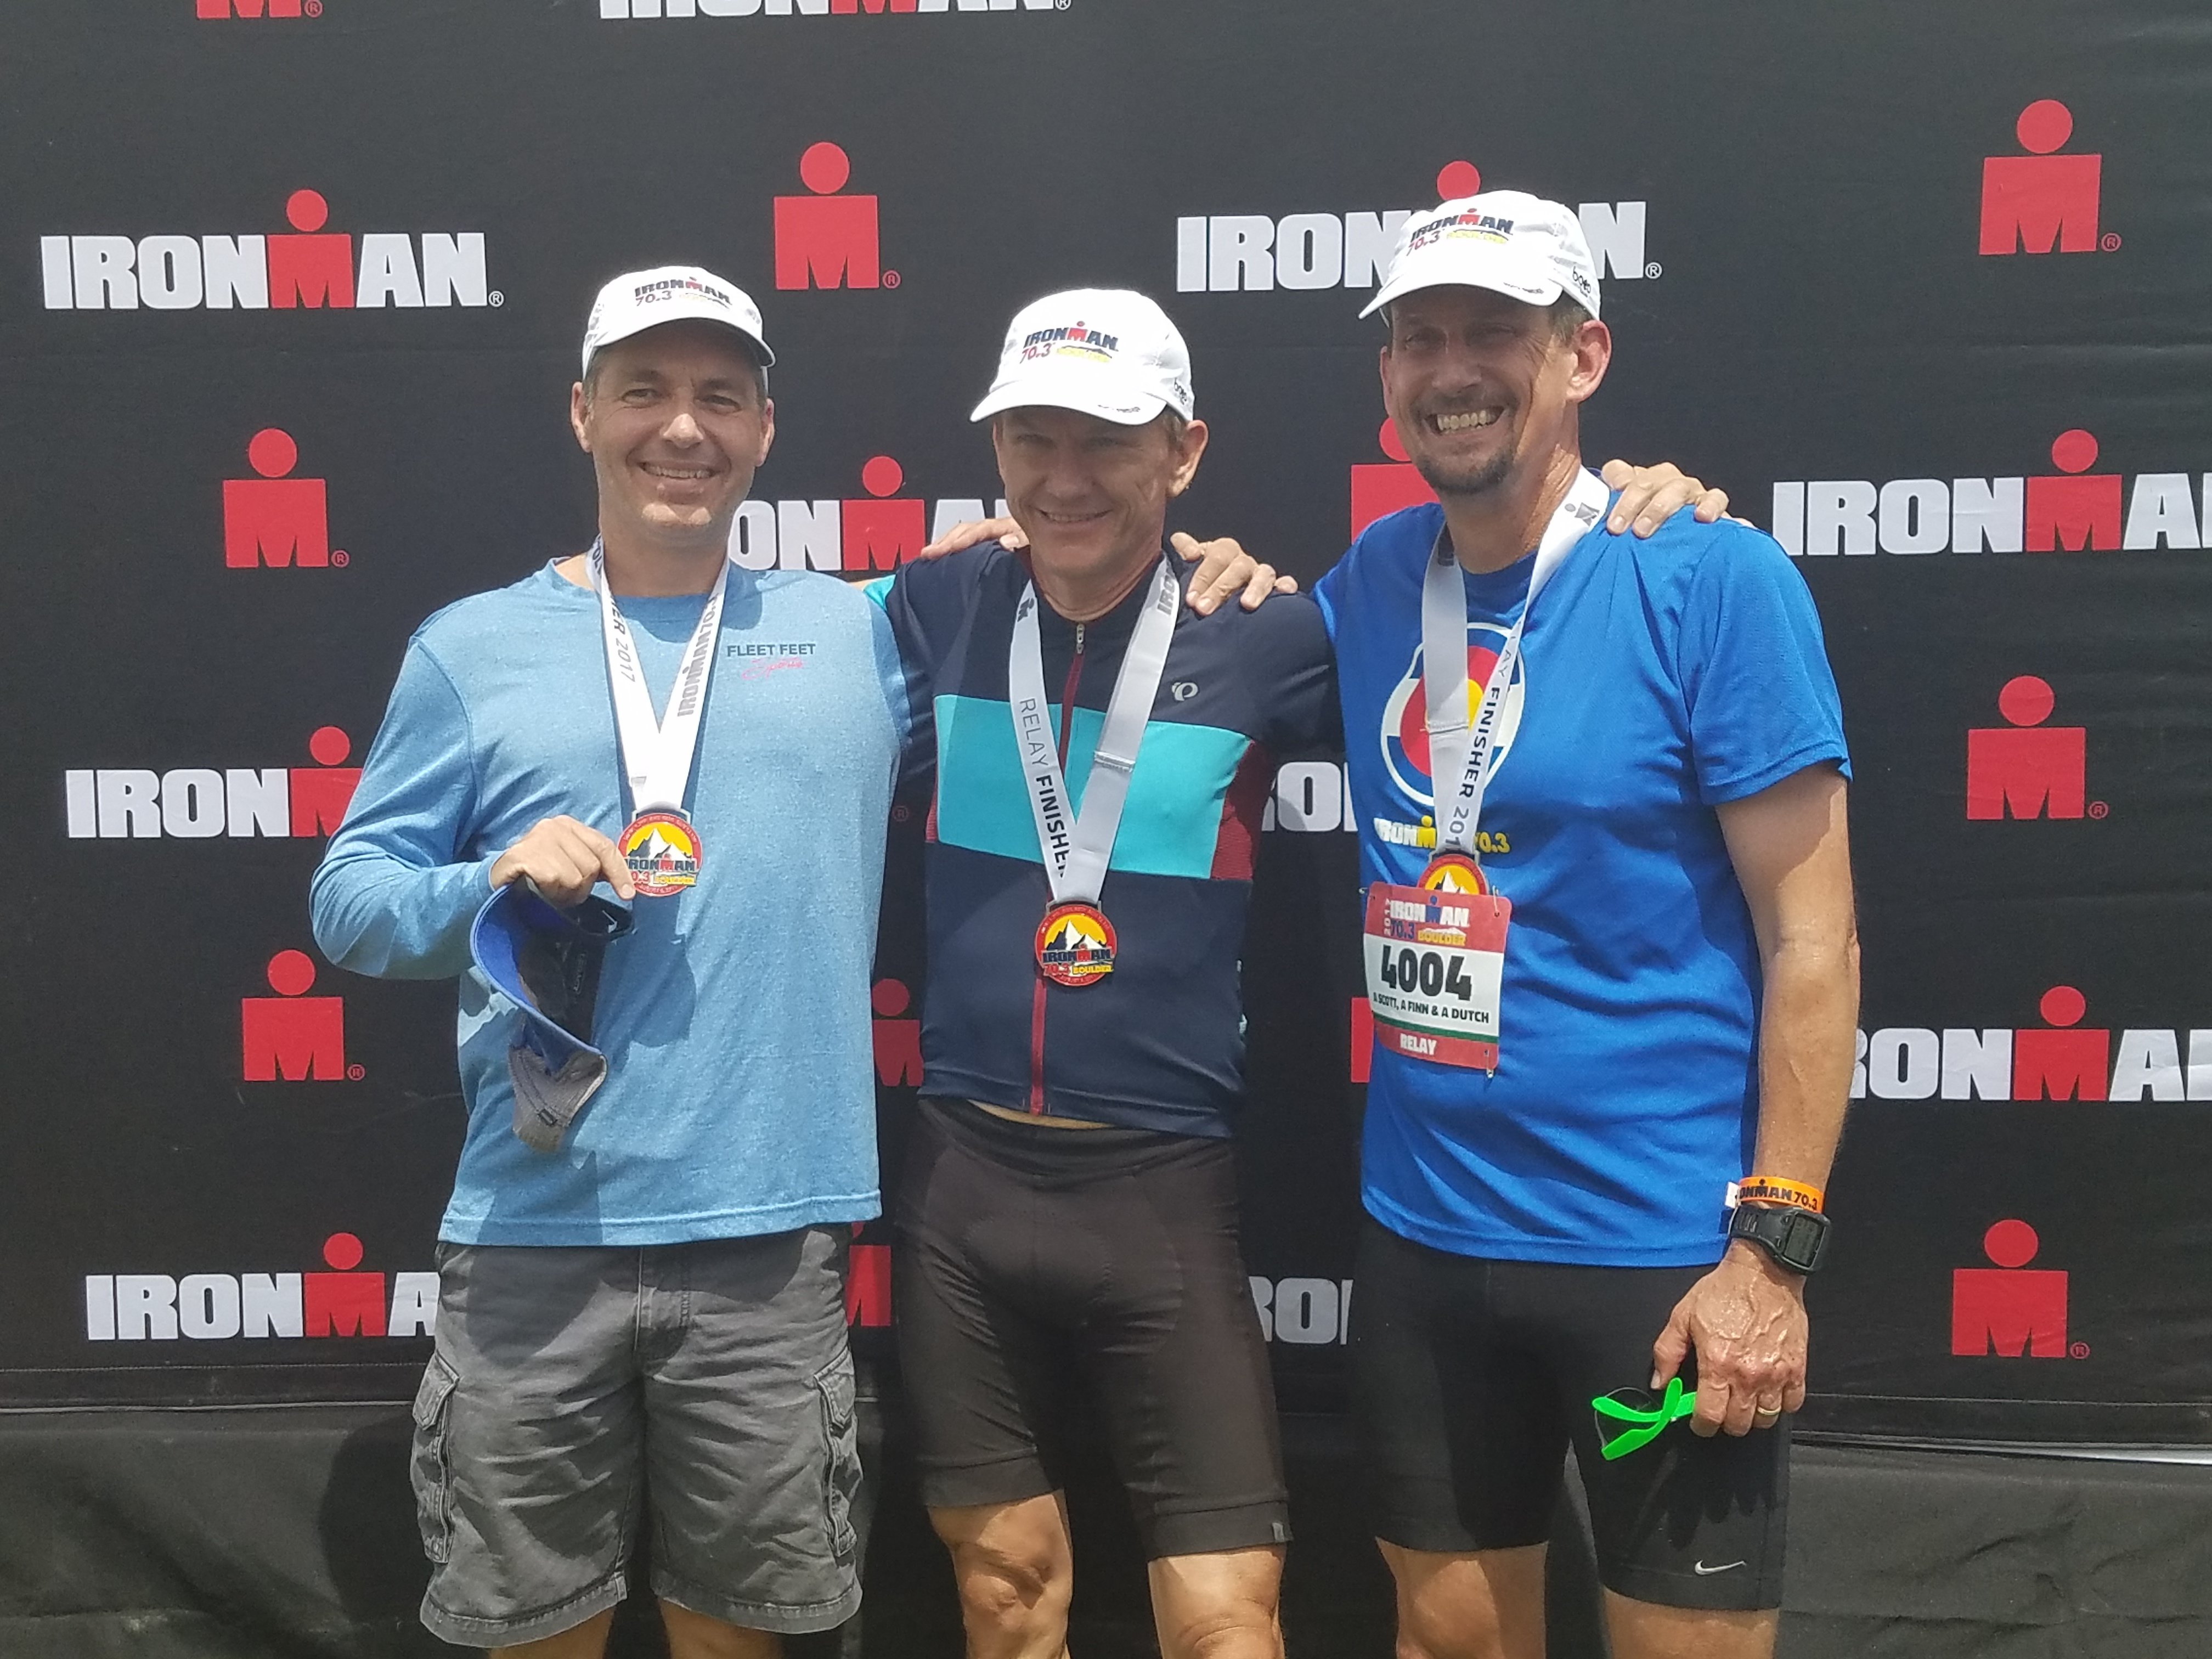 L to R: Gavin Maitland (swim), Harri Lintukorpi (bike), Greg Lems (run)